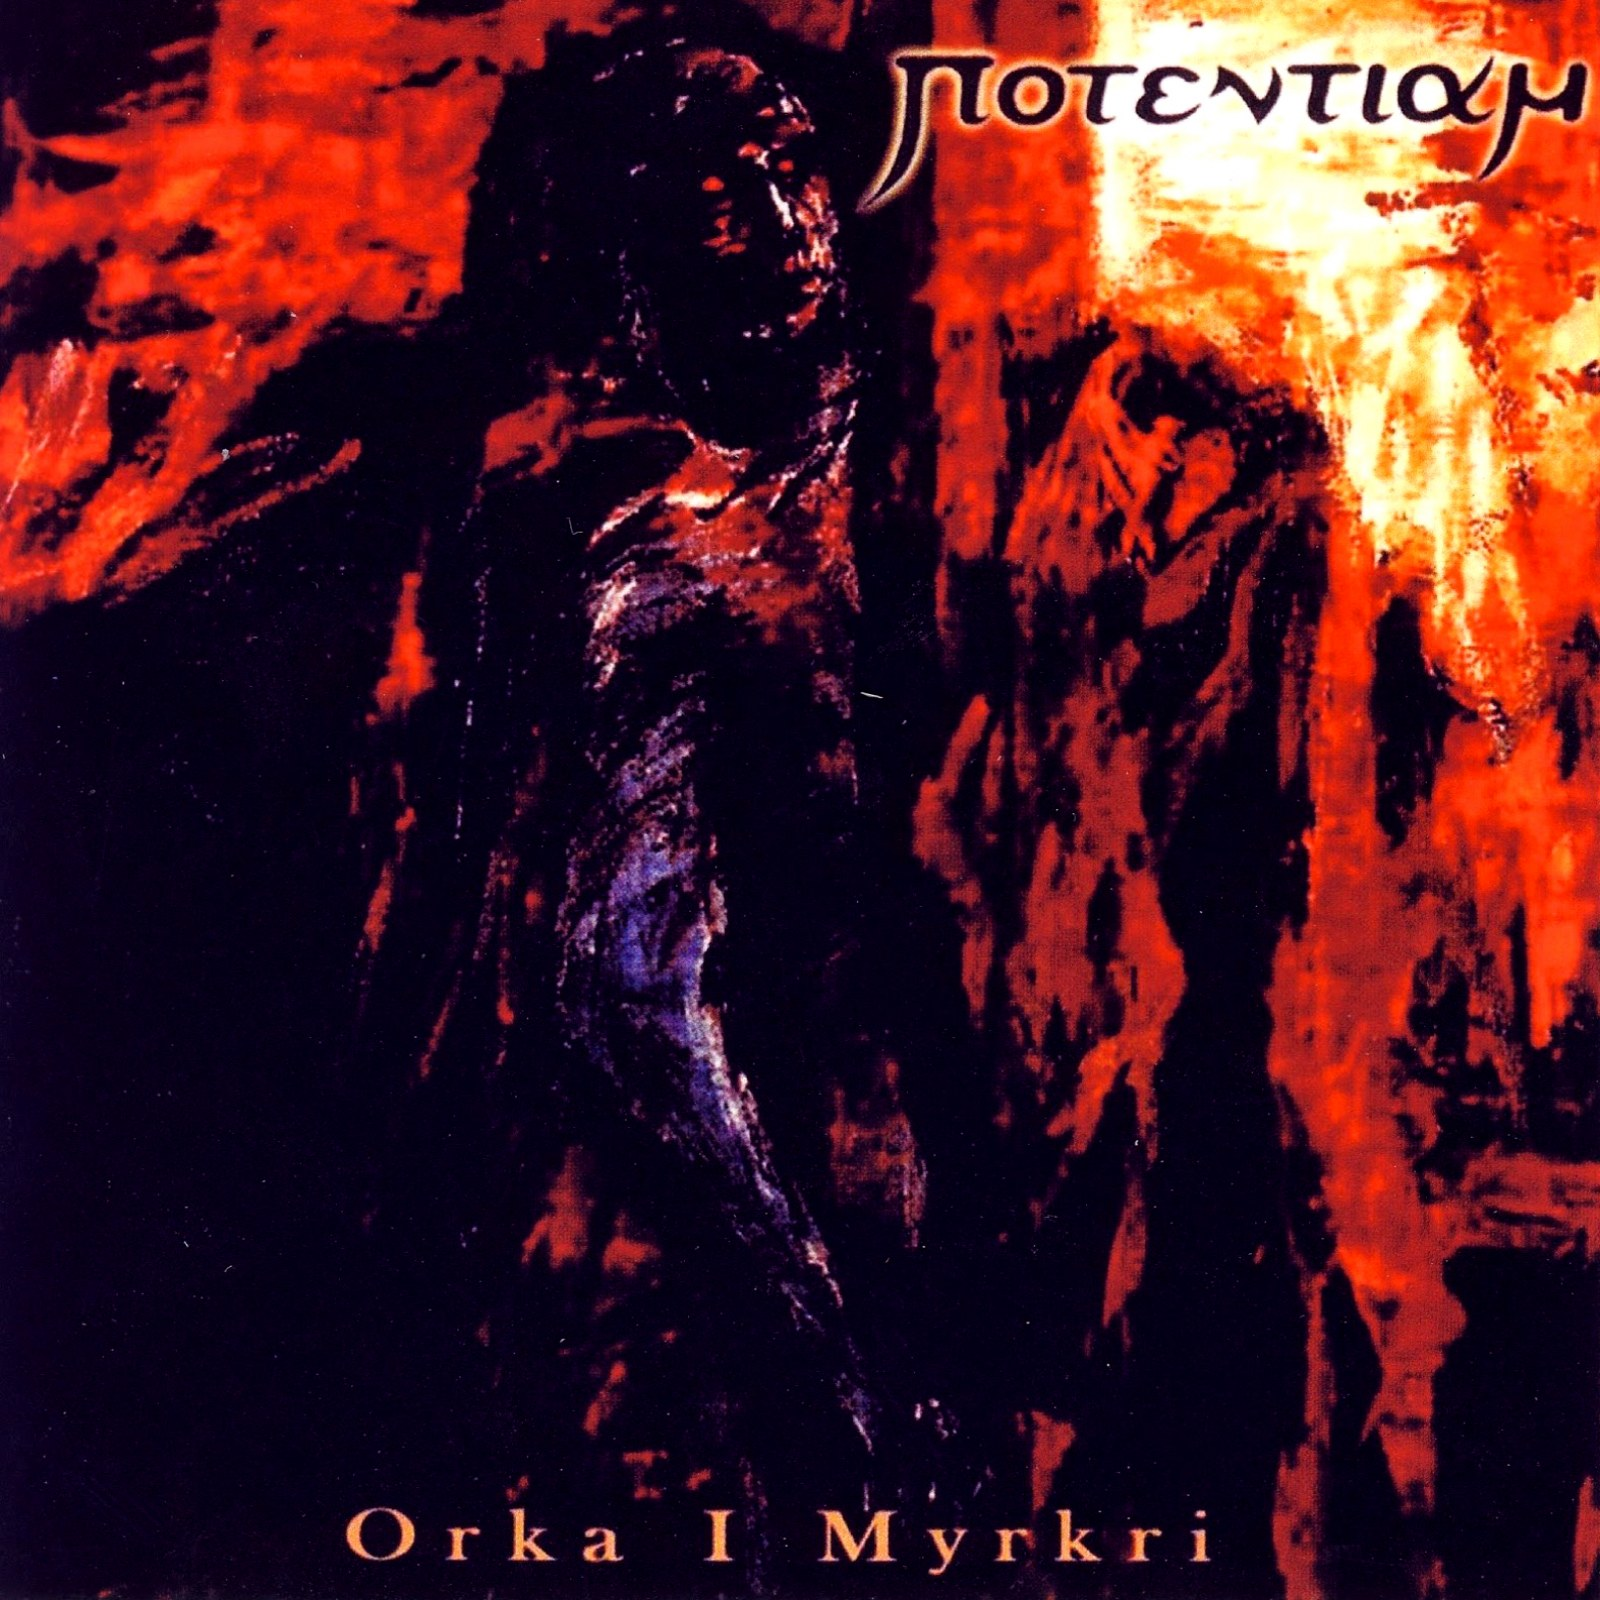 Review for Potentiam - Orka I Myrkri